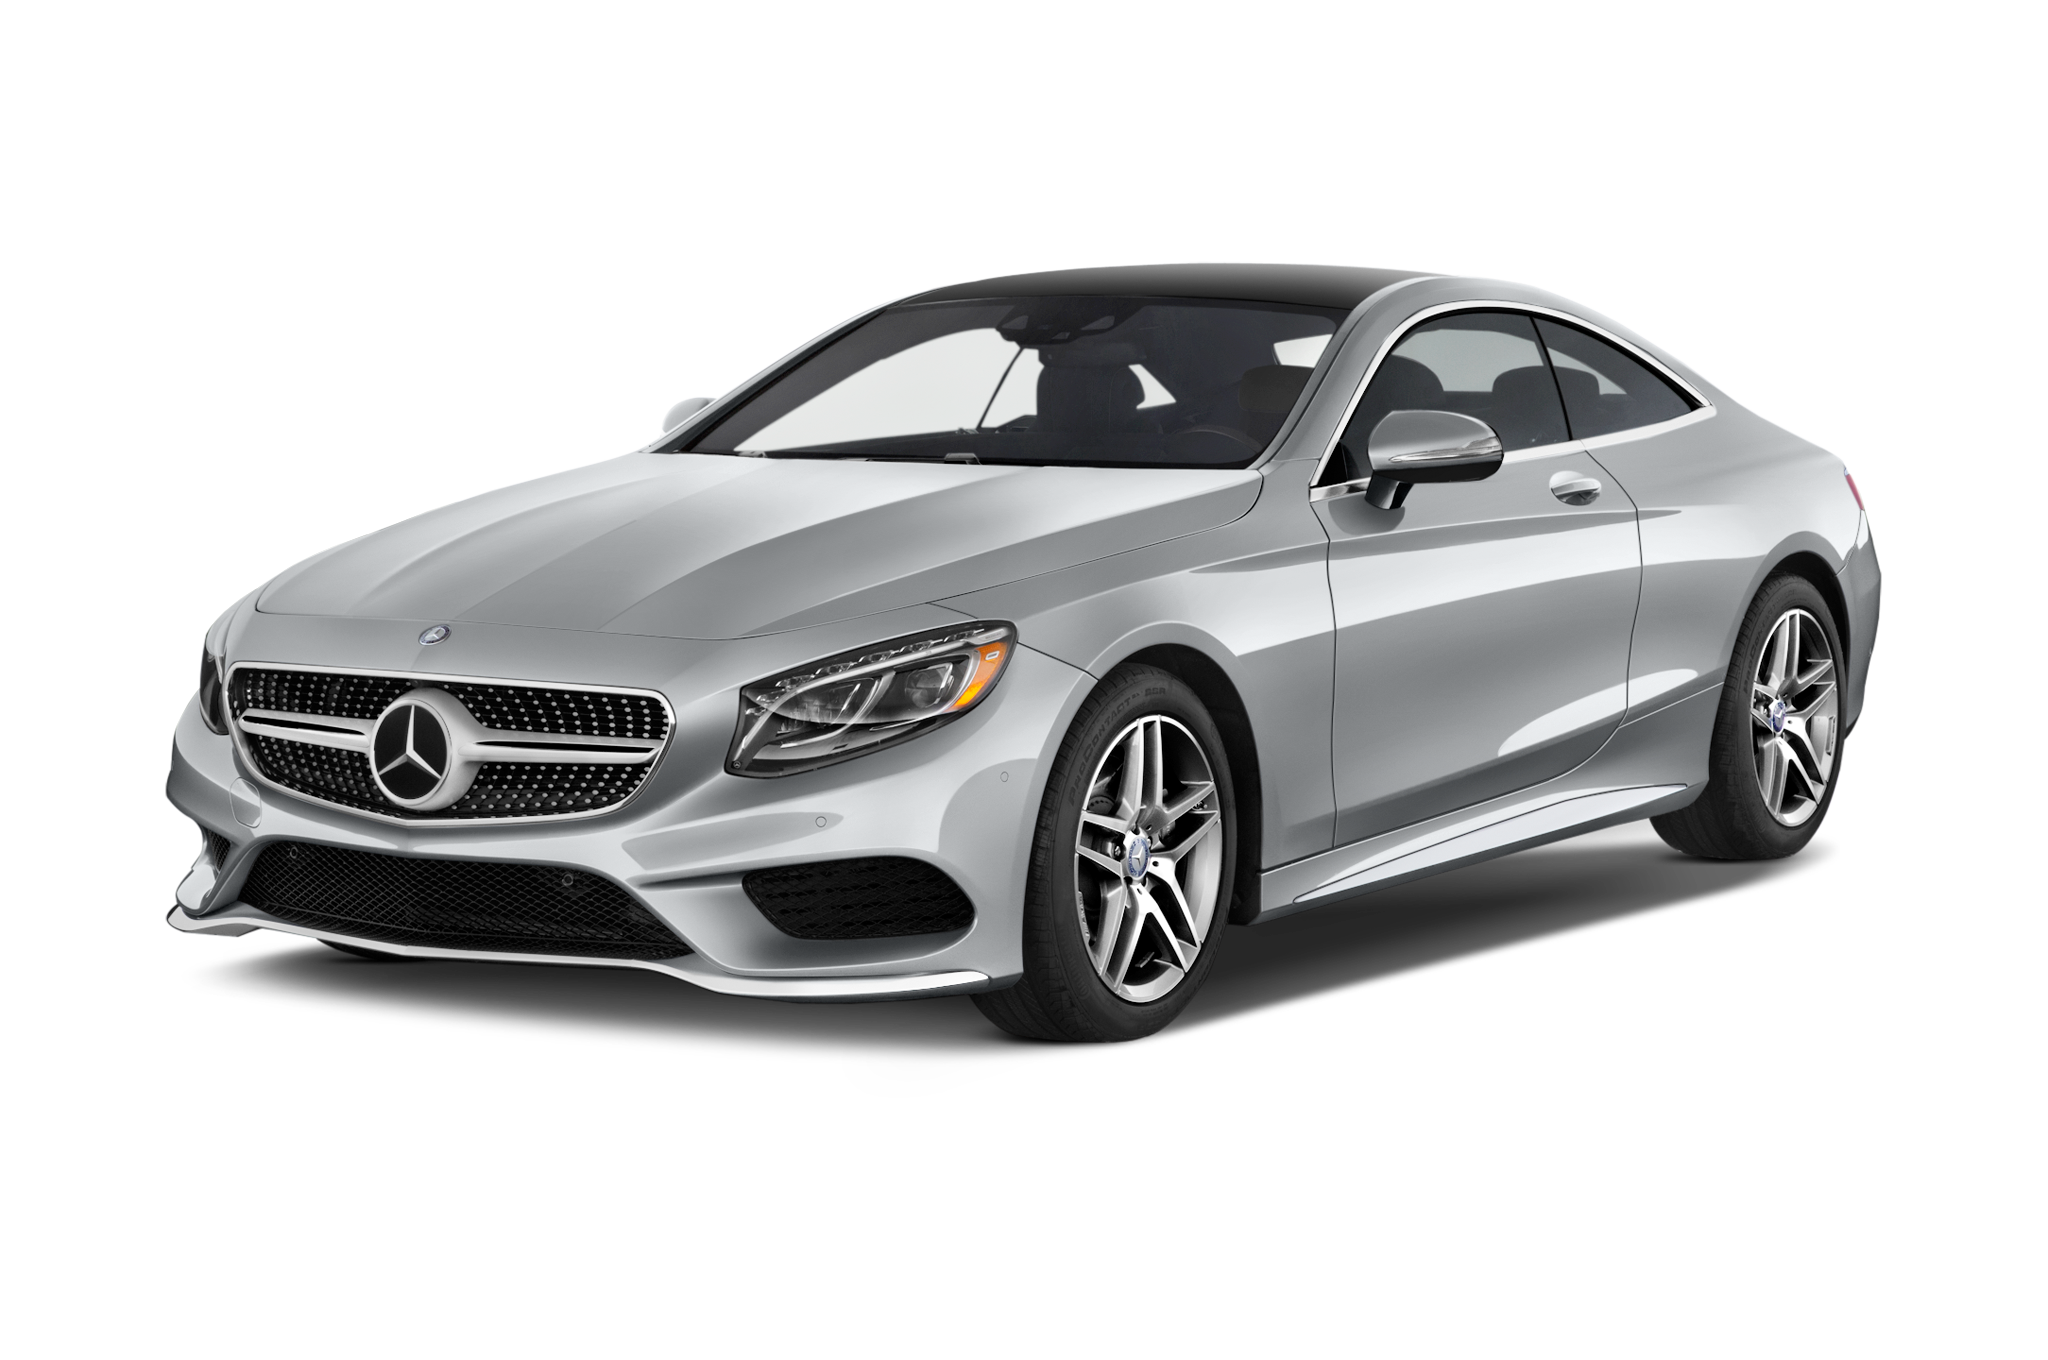 2017 mercedes benz s class amg s65 coupe pricing msn autos. Black Bedroom Furniture Sets. Home Design Ideas